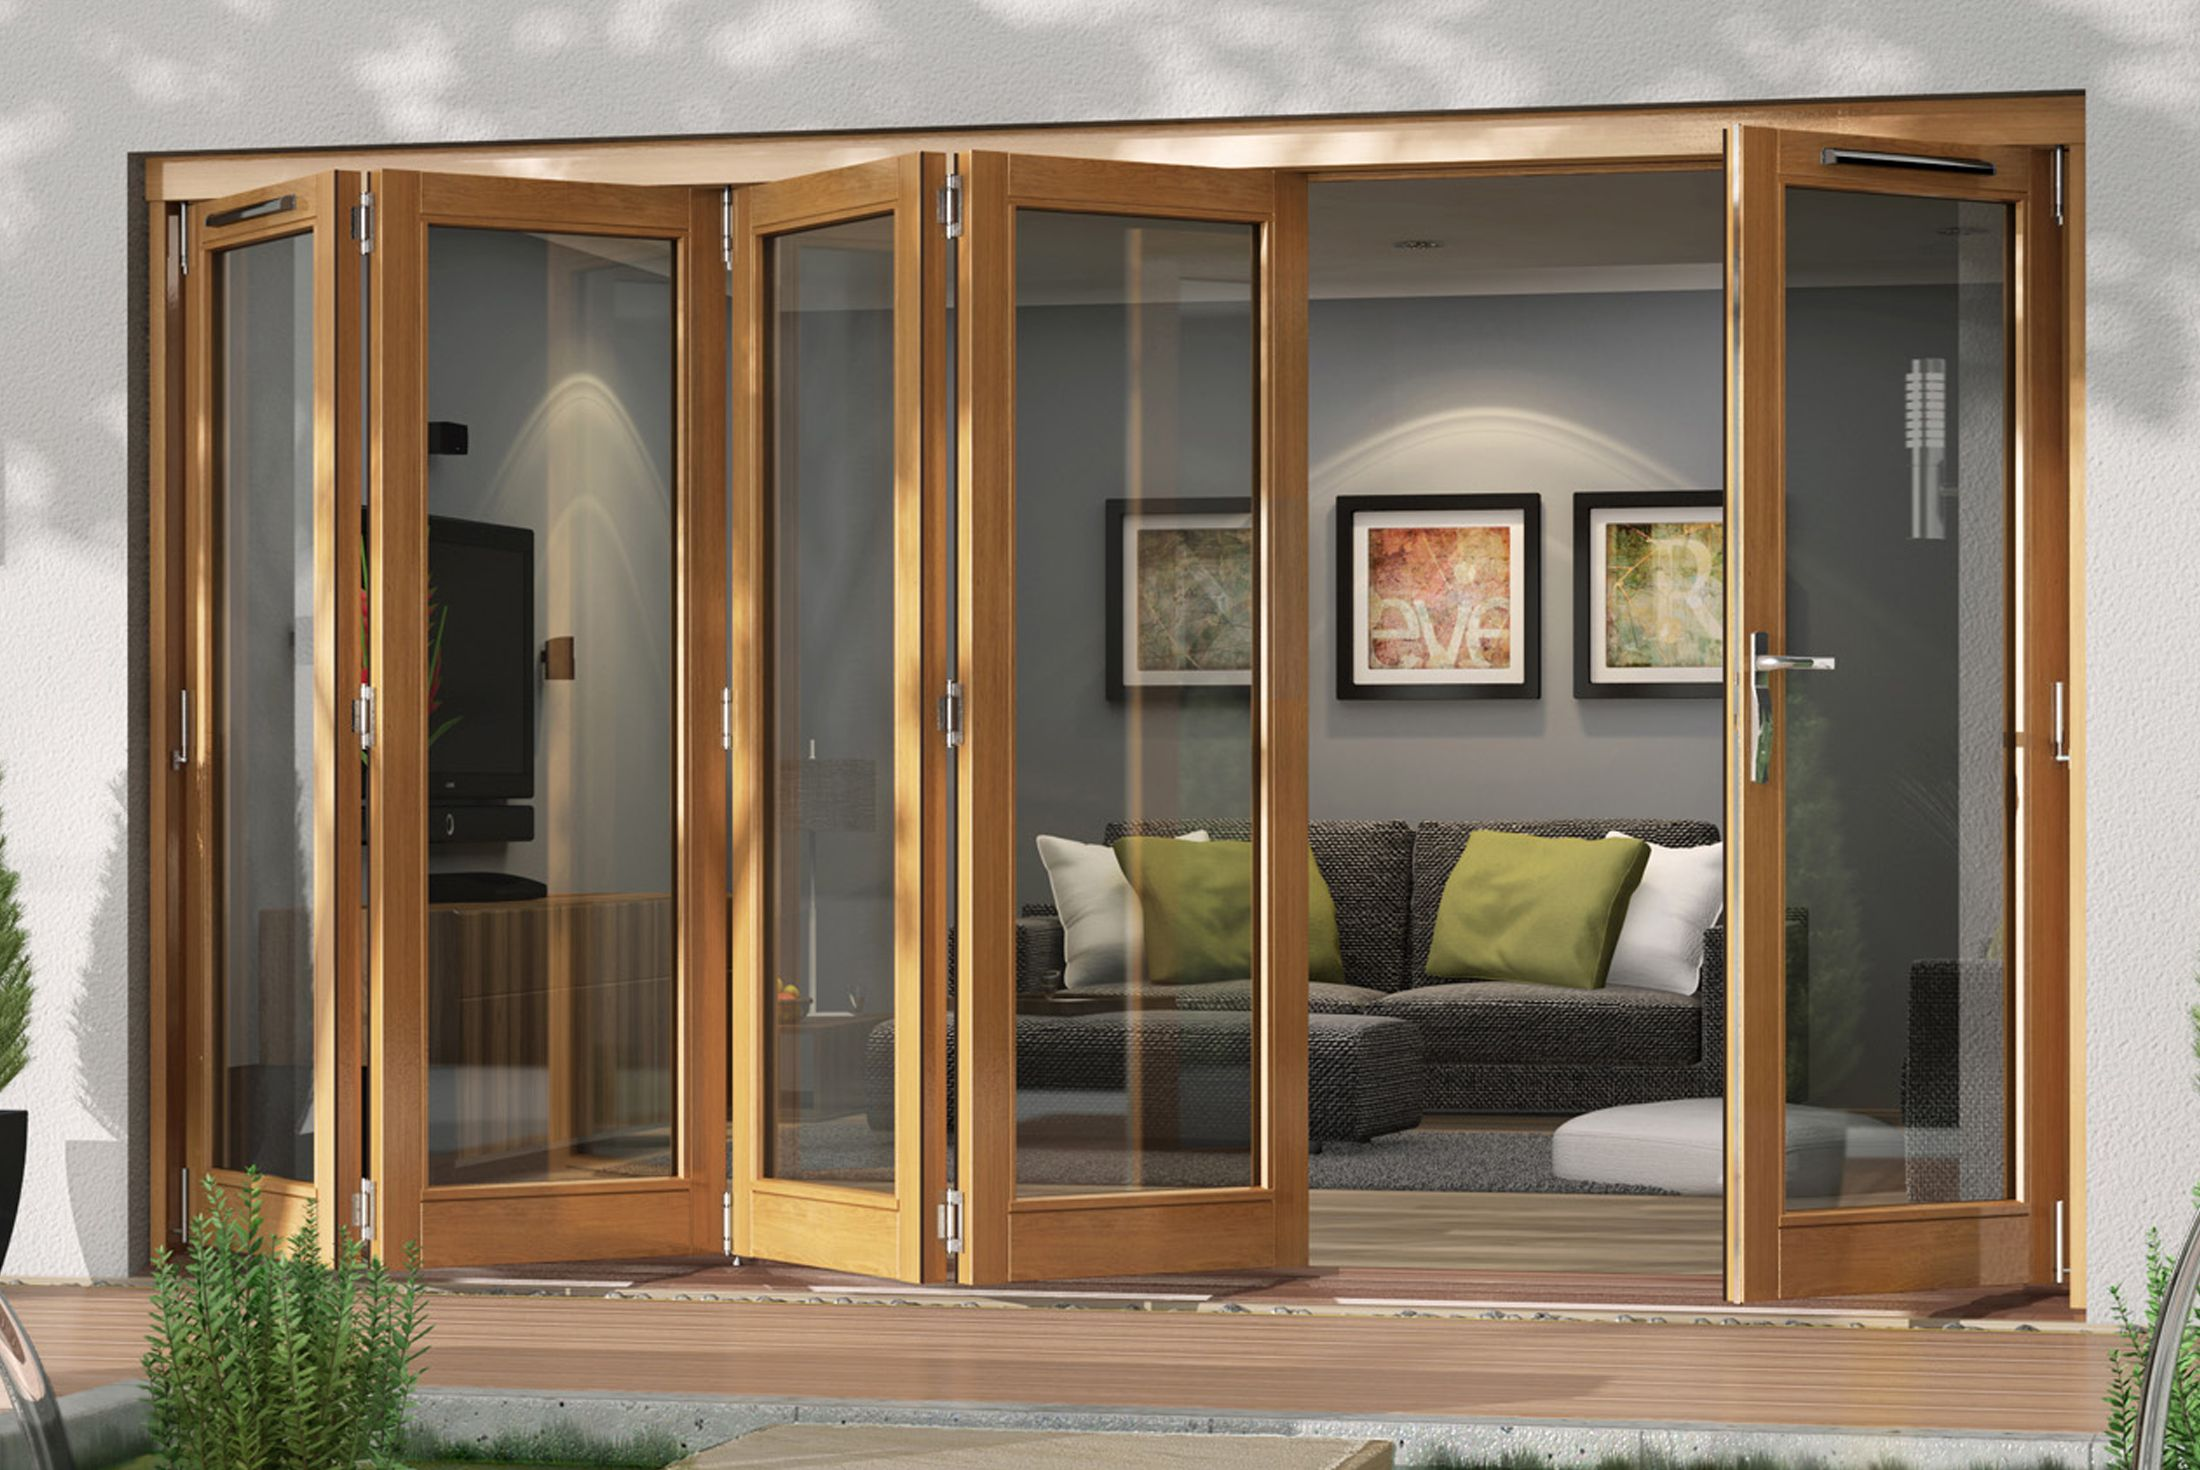 External Patio Doors Of Patio Doors Buying Guide Help Ideas Diy At B Q